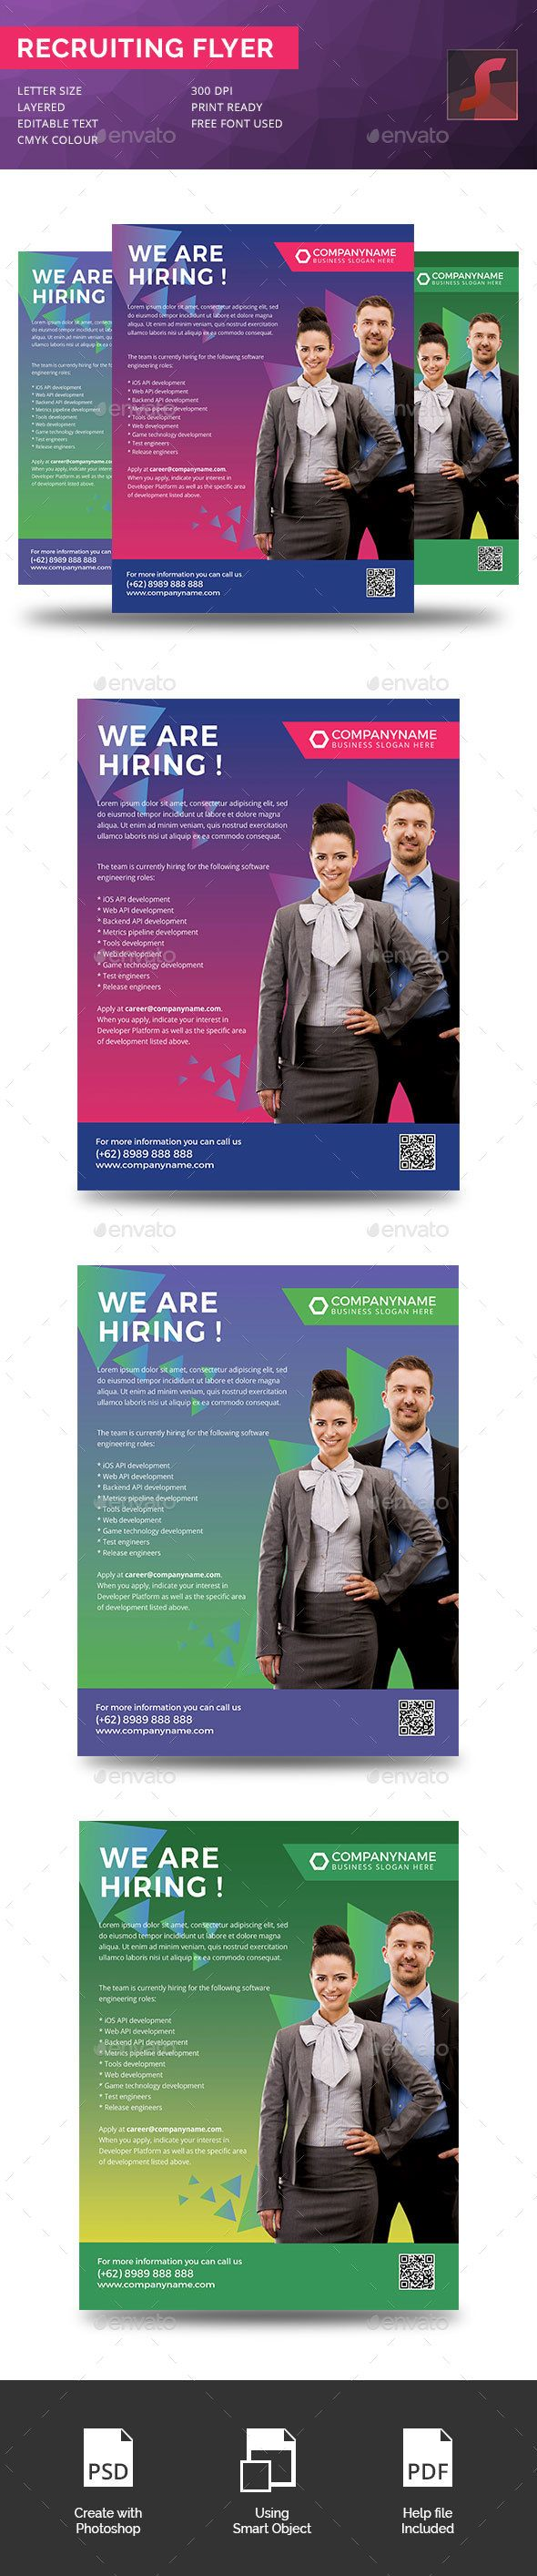 Recruiting Company Flyer | Download here : https://graphicriver.net/item/recruiting-company-flyer/16086964?ref=sinzo